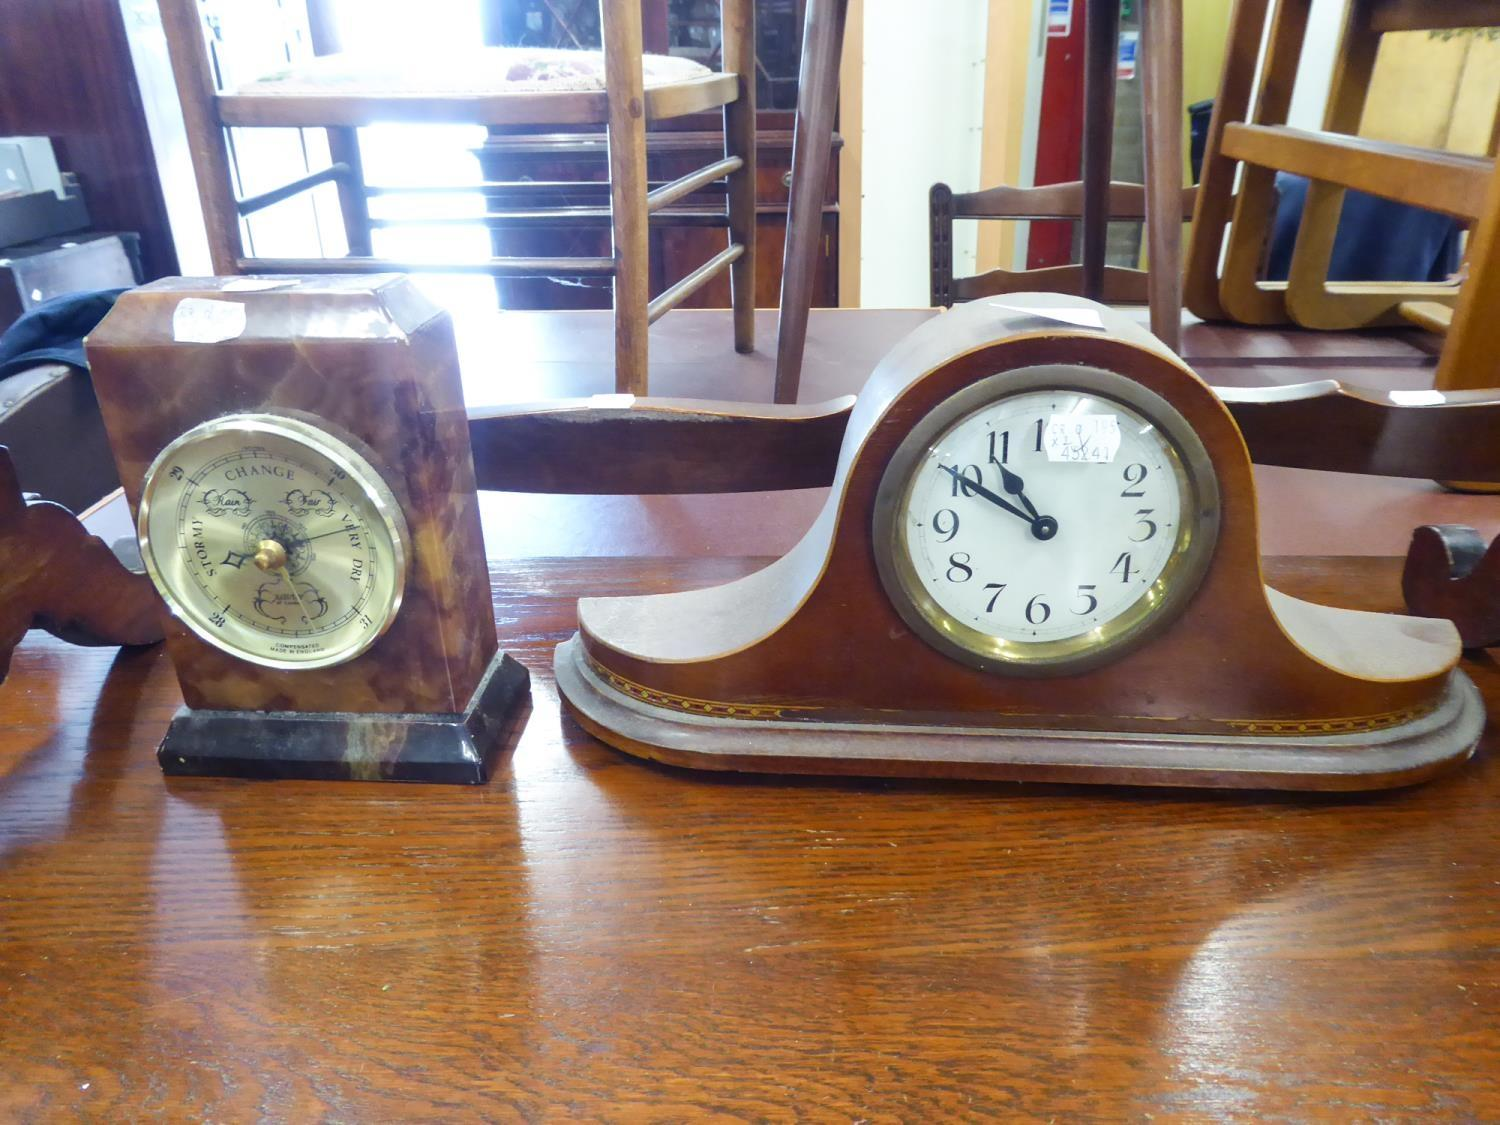 Lot 165 - CIRCA 1920's MAHOGANY MANTEL CLOCK IN NAPOLEONS HAT SHAPE CASE WITH DRUM SHAPED MOVEMENT AND